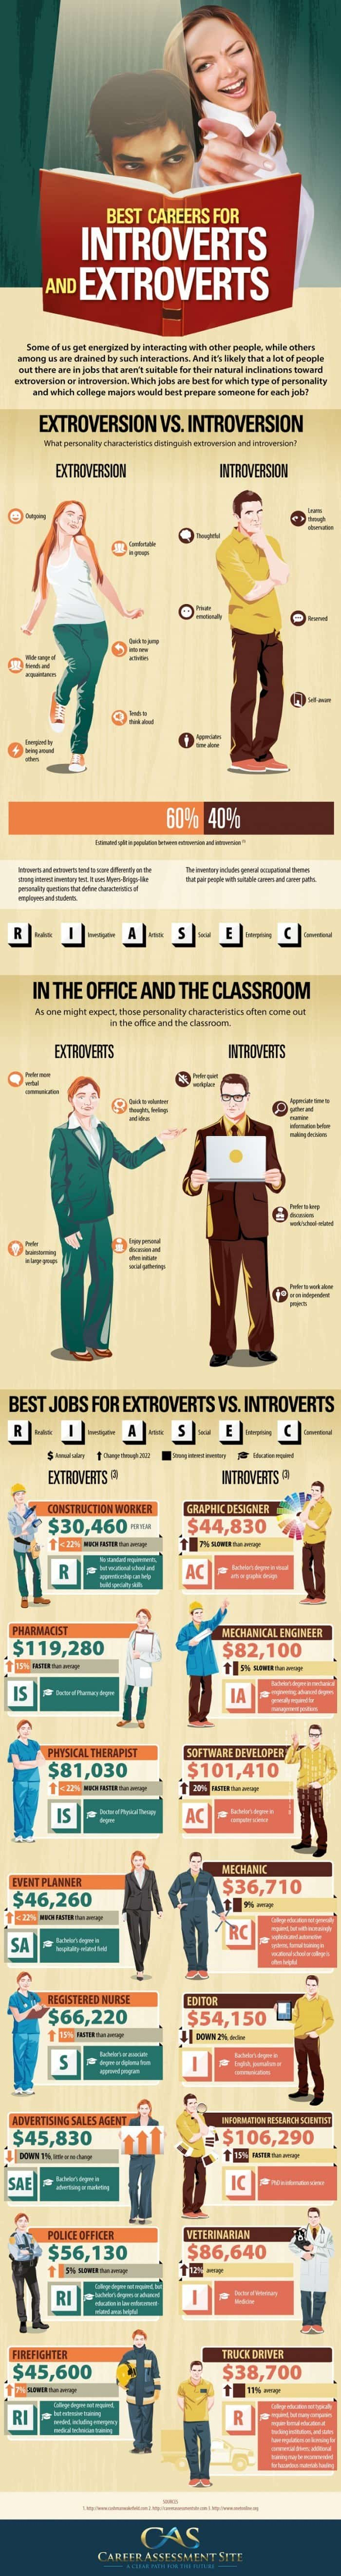 The Best Careers For Introverts And Extroverts [Infographic] | Daily Infographic